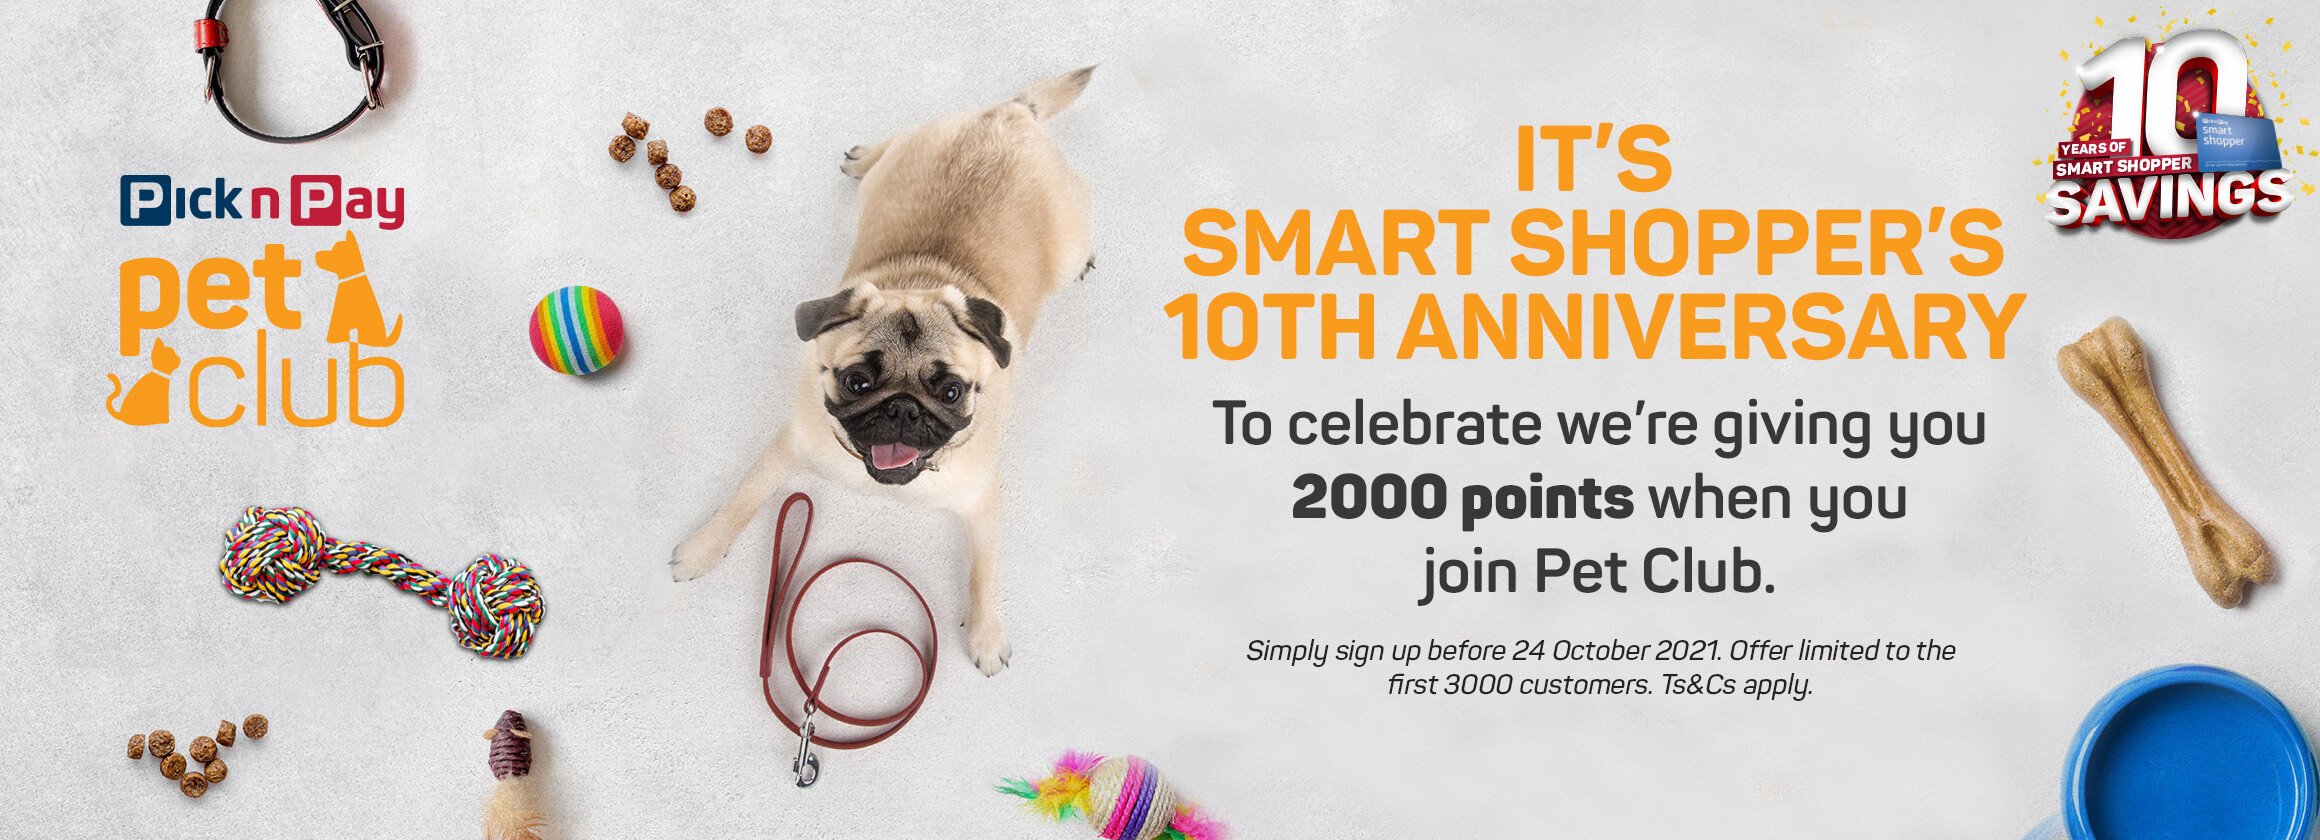 Its Smart Shopper's 10th anniversary. To celebrate we're giving you 2000 points when you join Pet Club